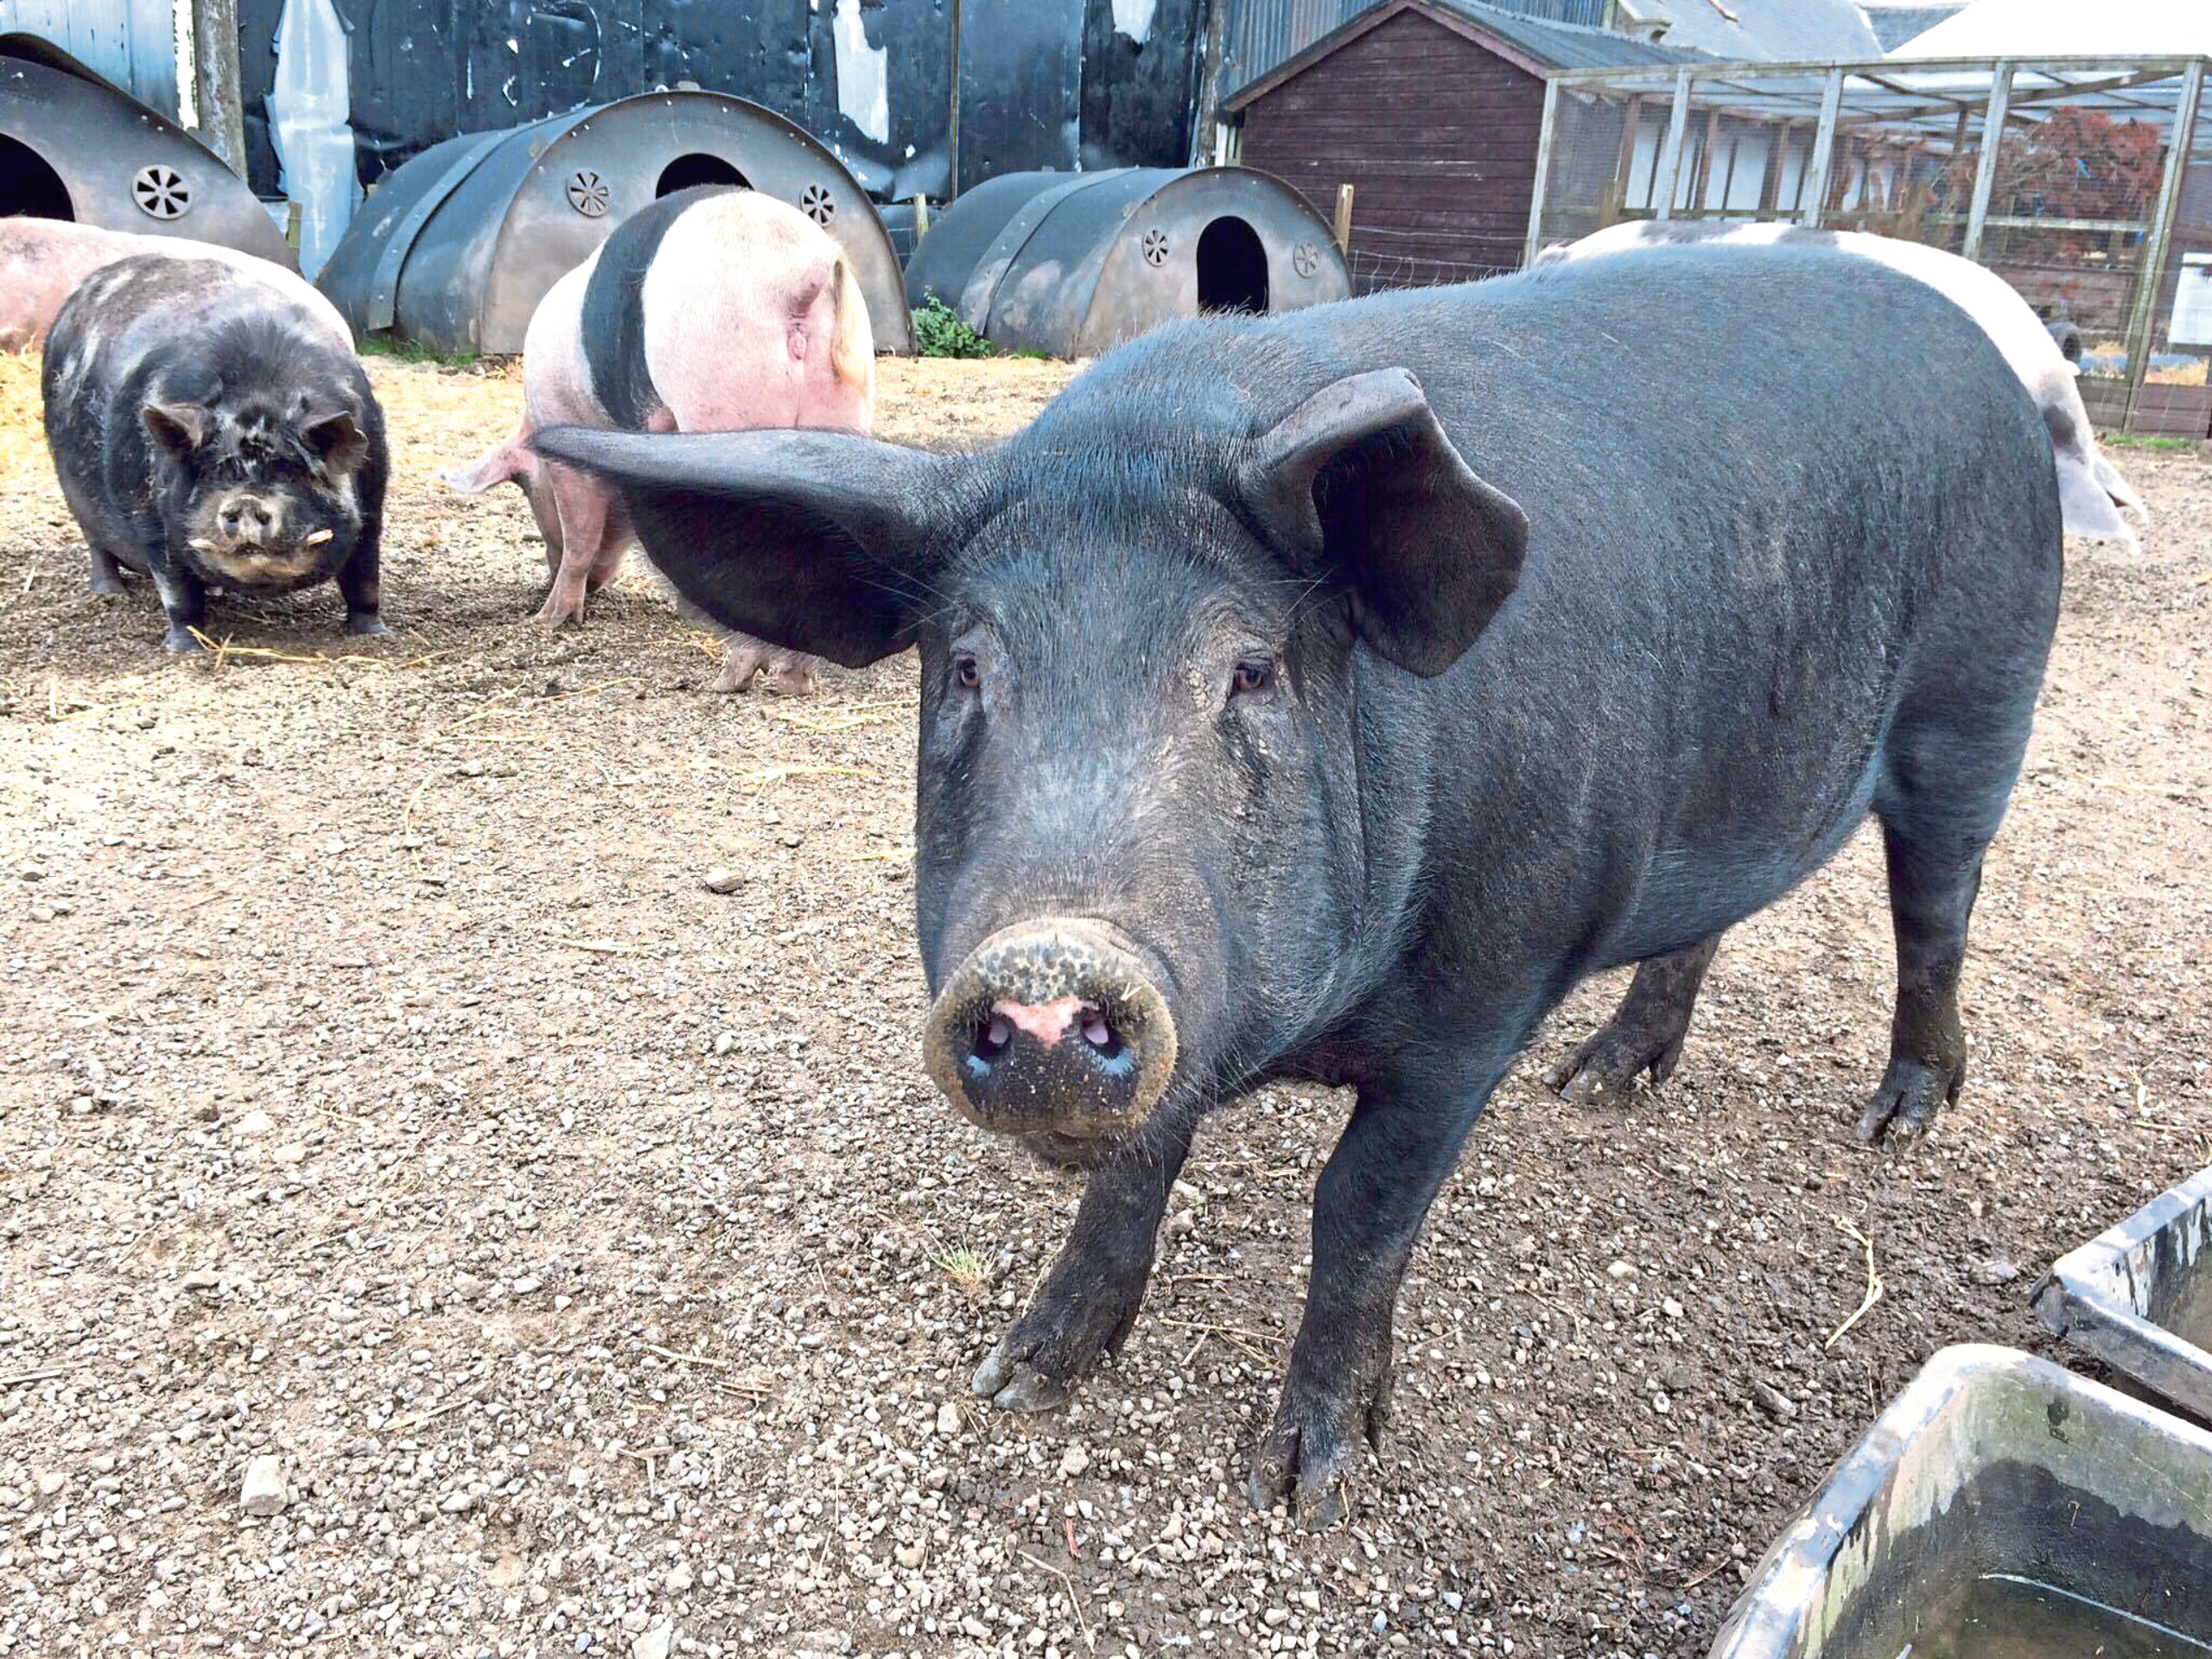 Norman the pig at Willows animal sanctuary